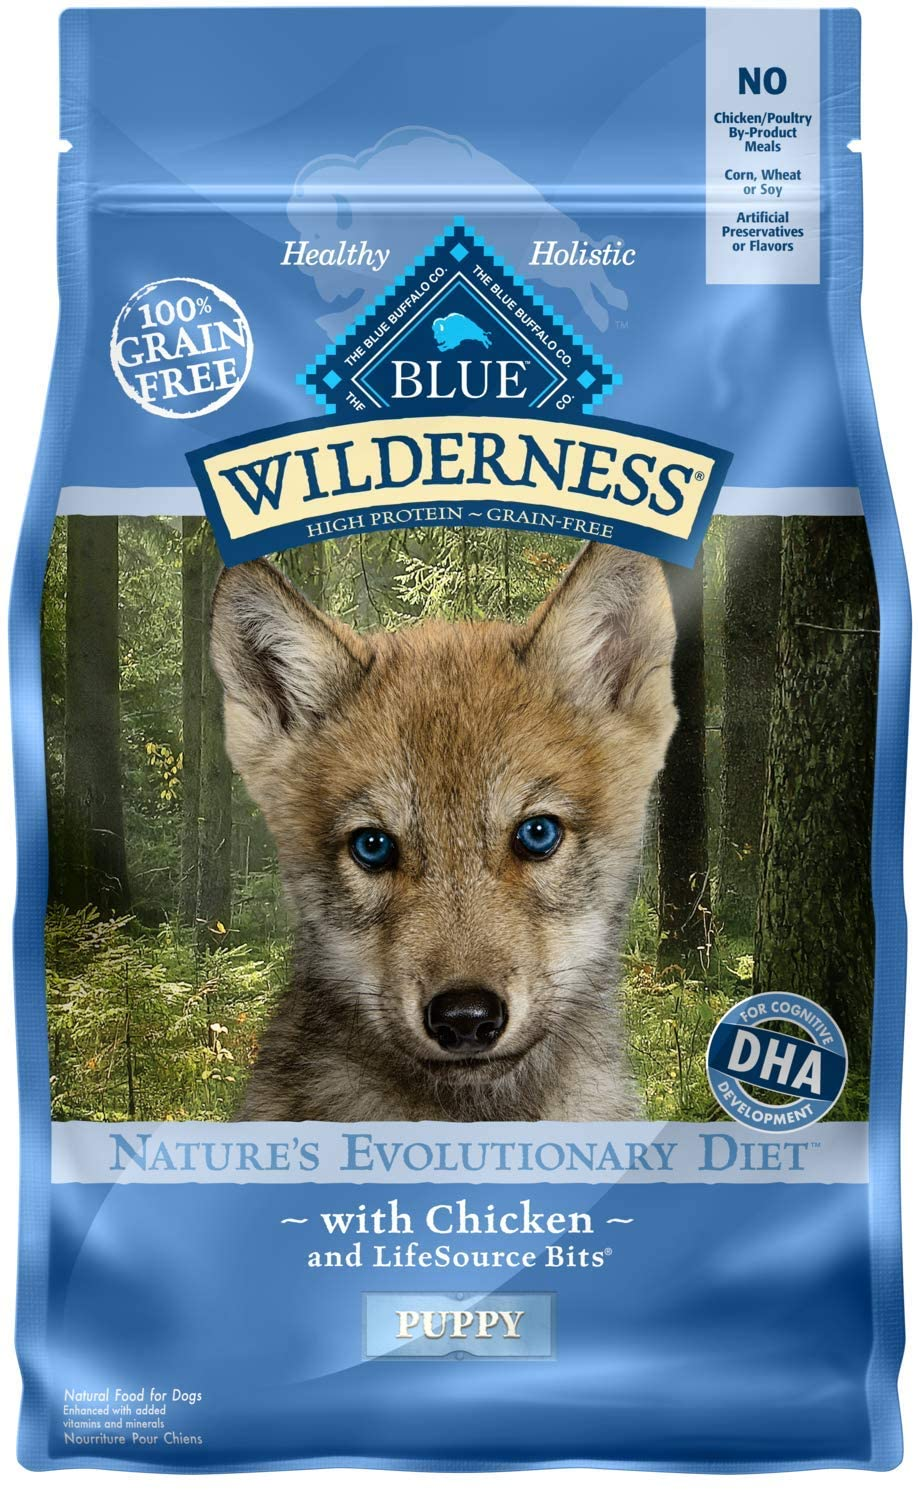 3. Blue Wilderness